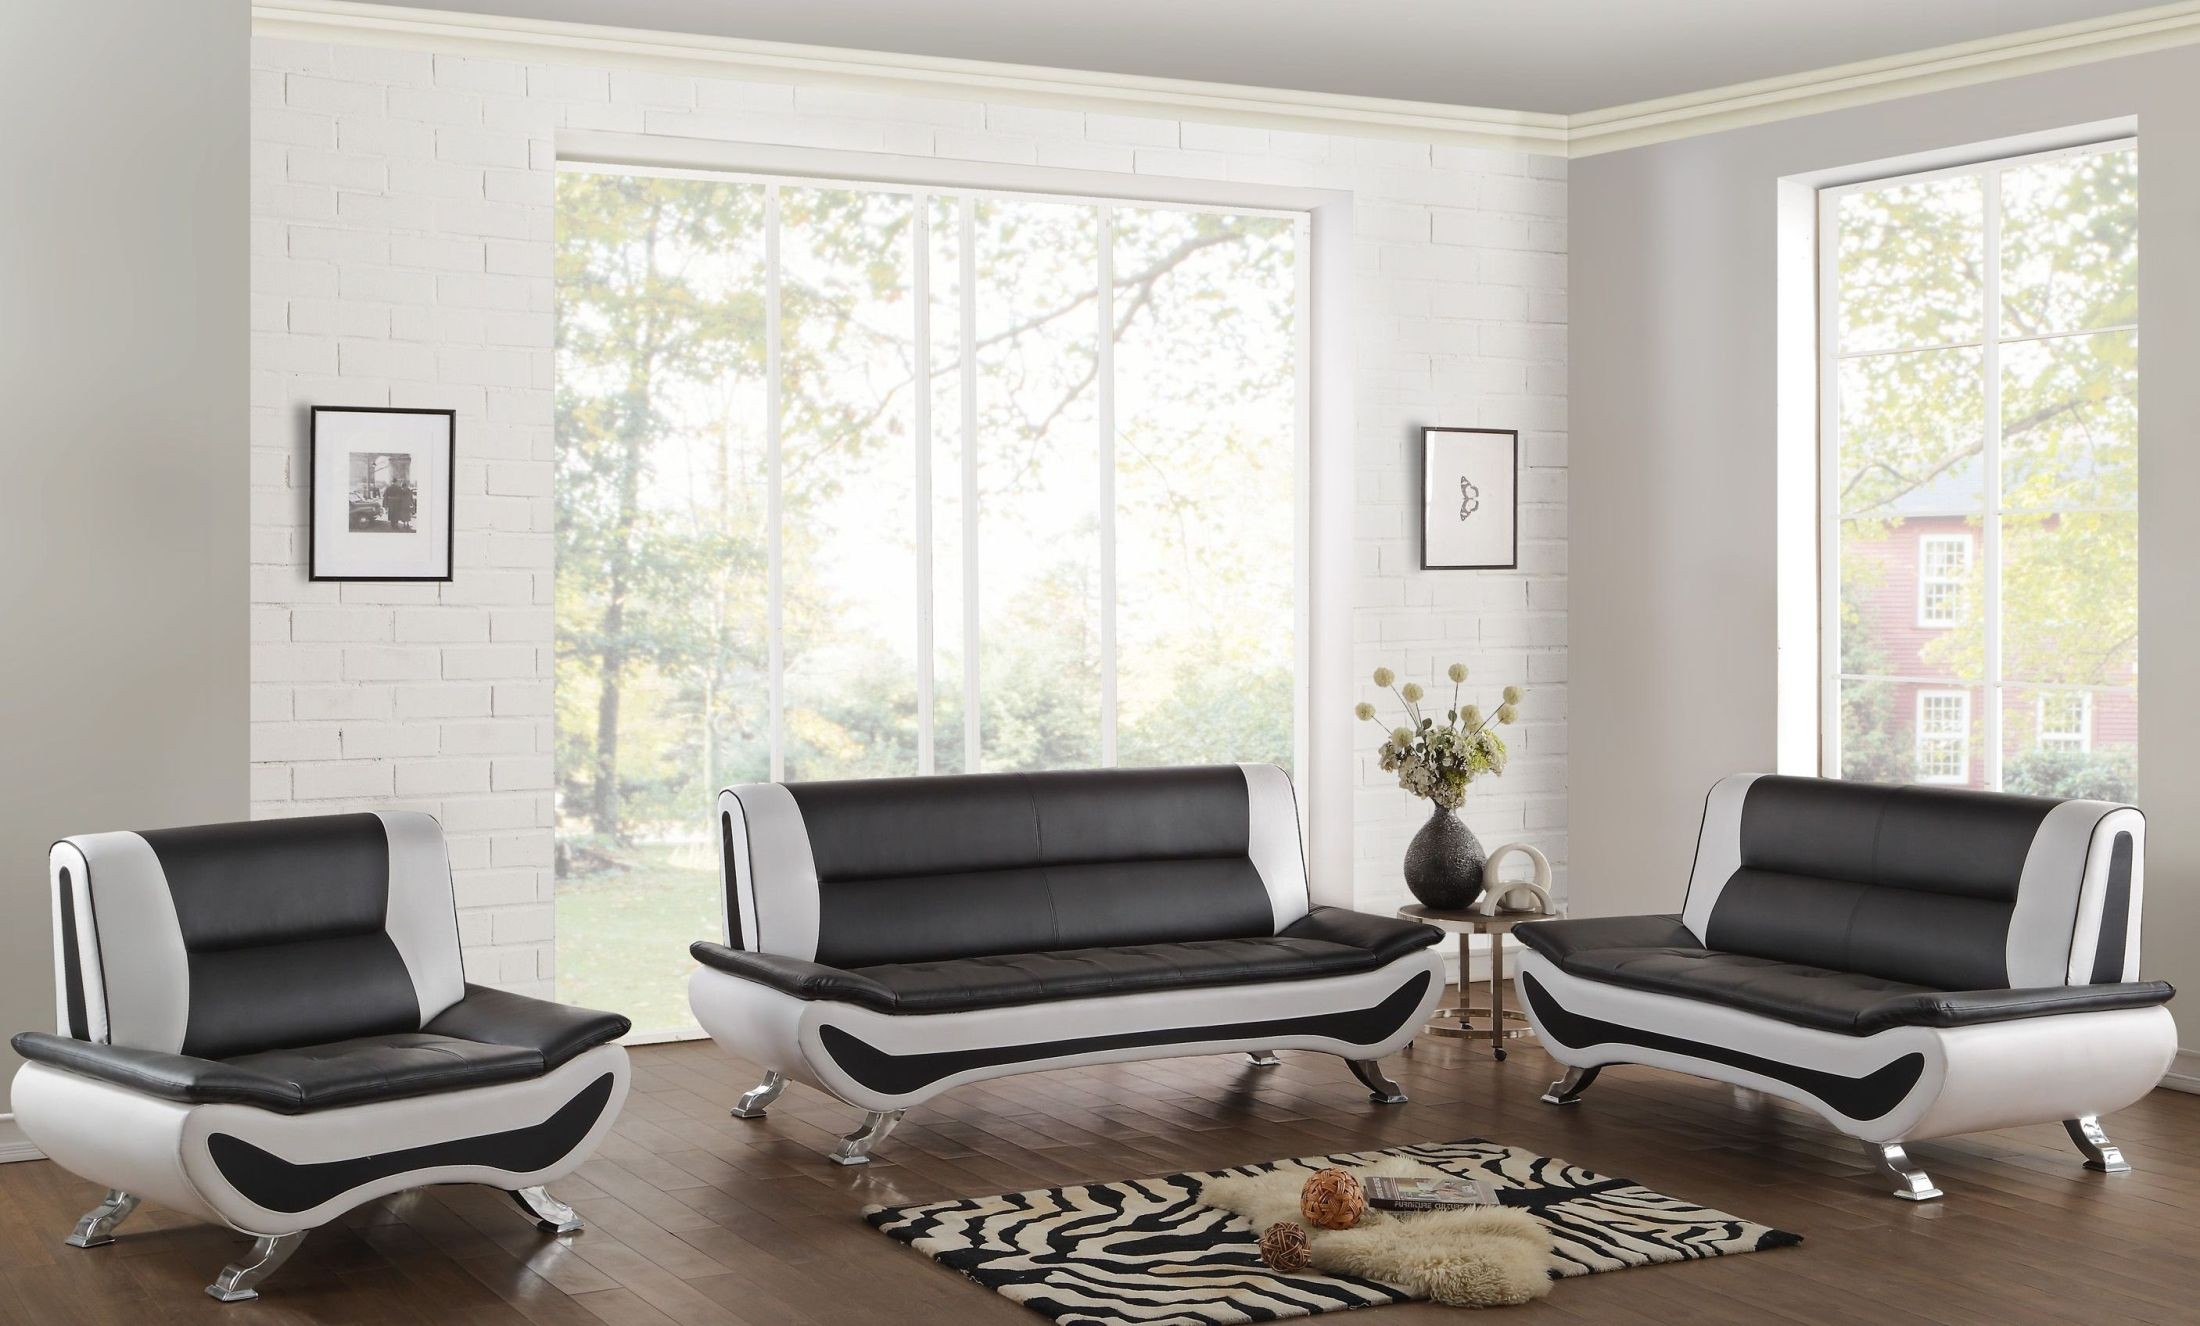 Veloce black and white living room set from homelegance - Black and white living room furniture ...